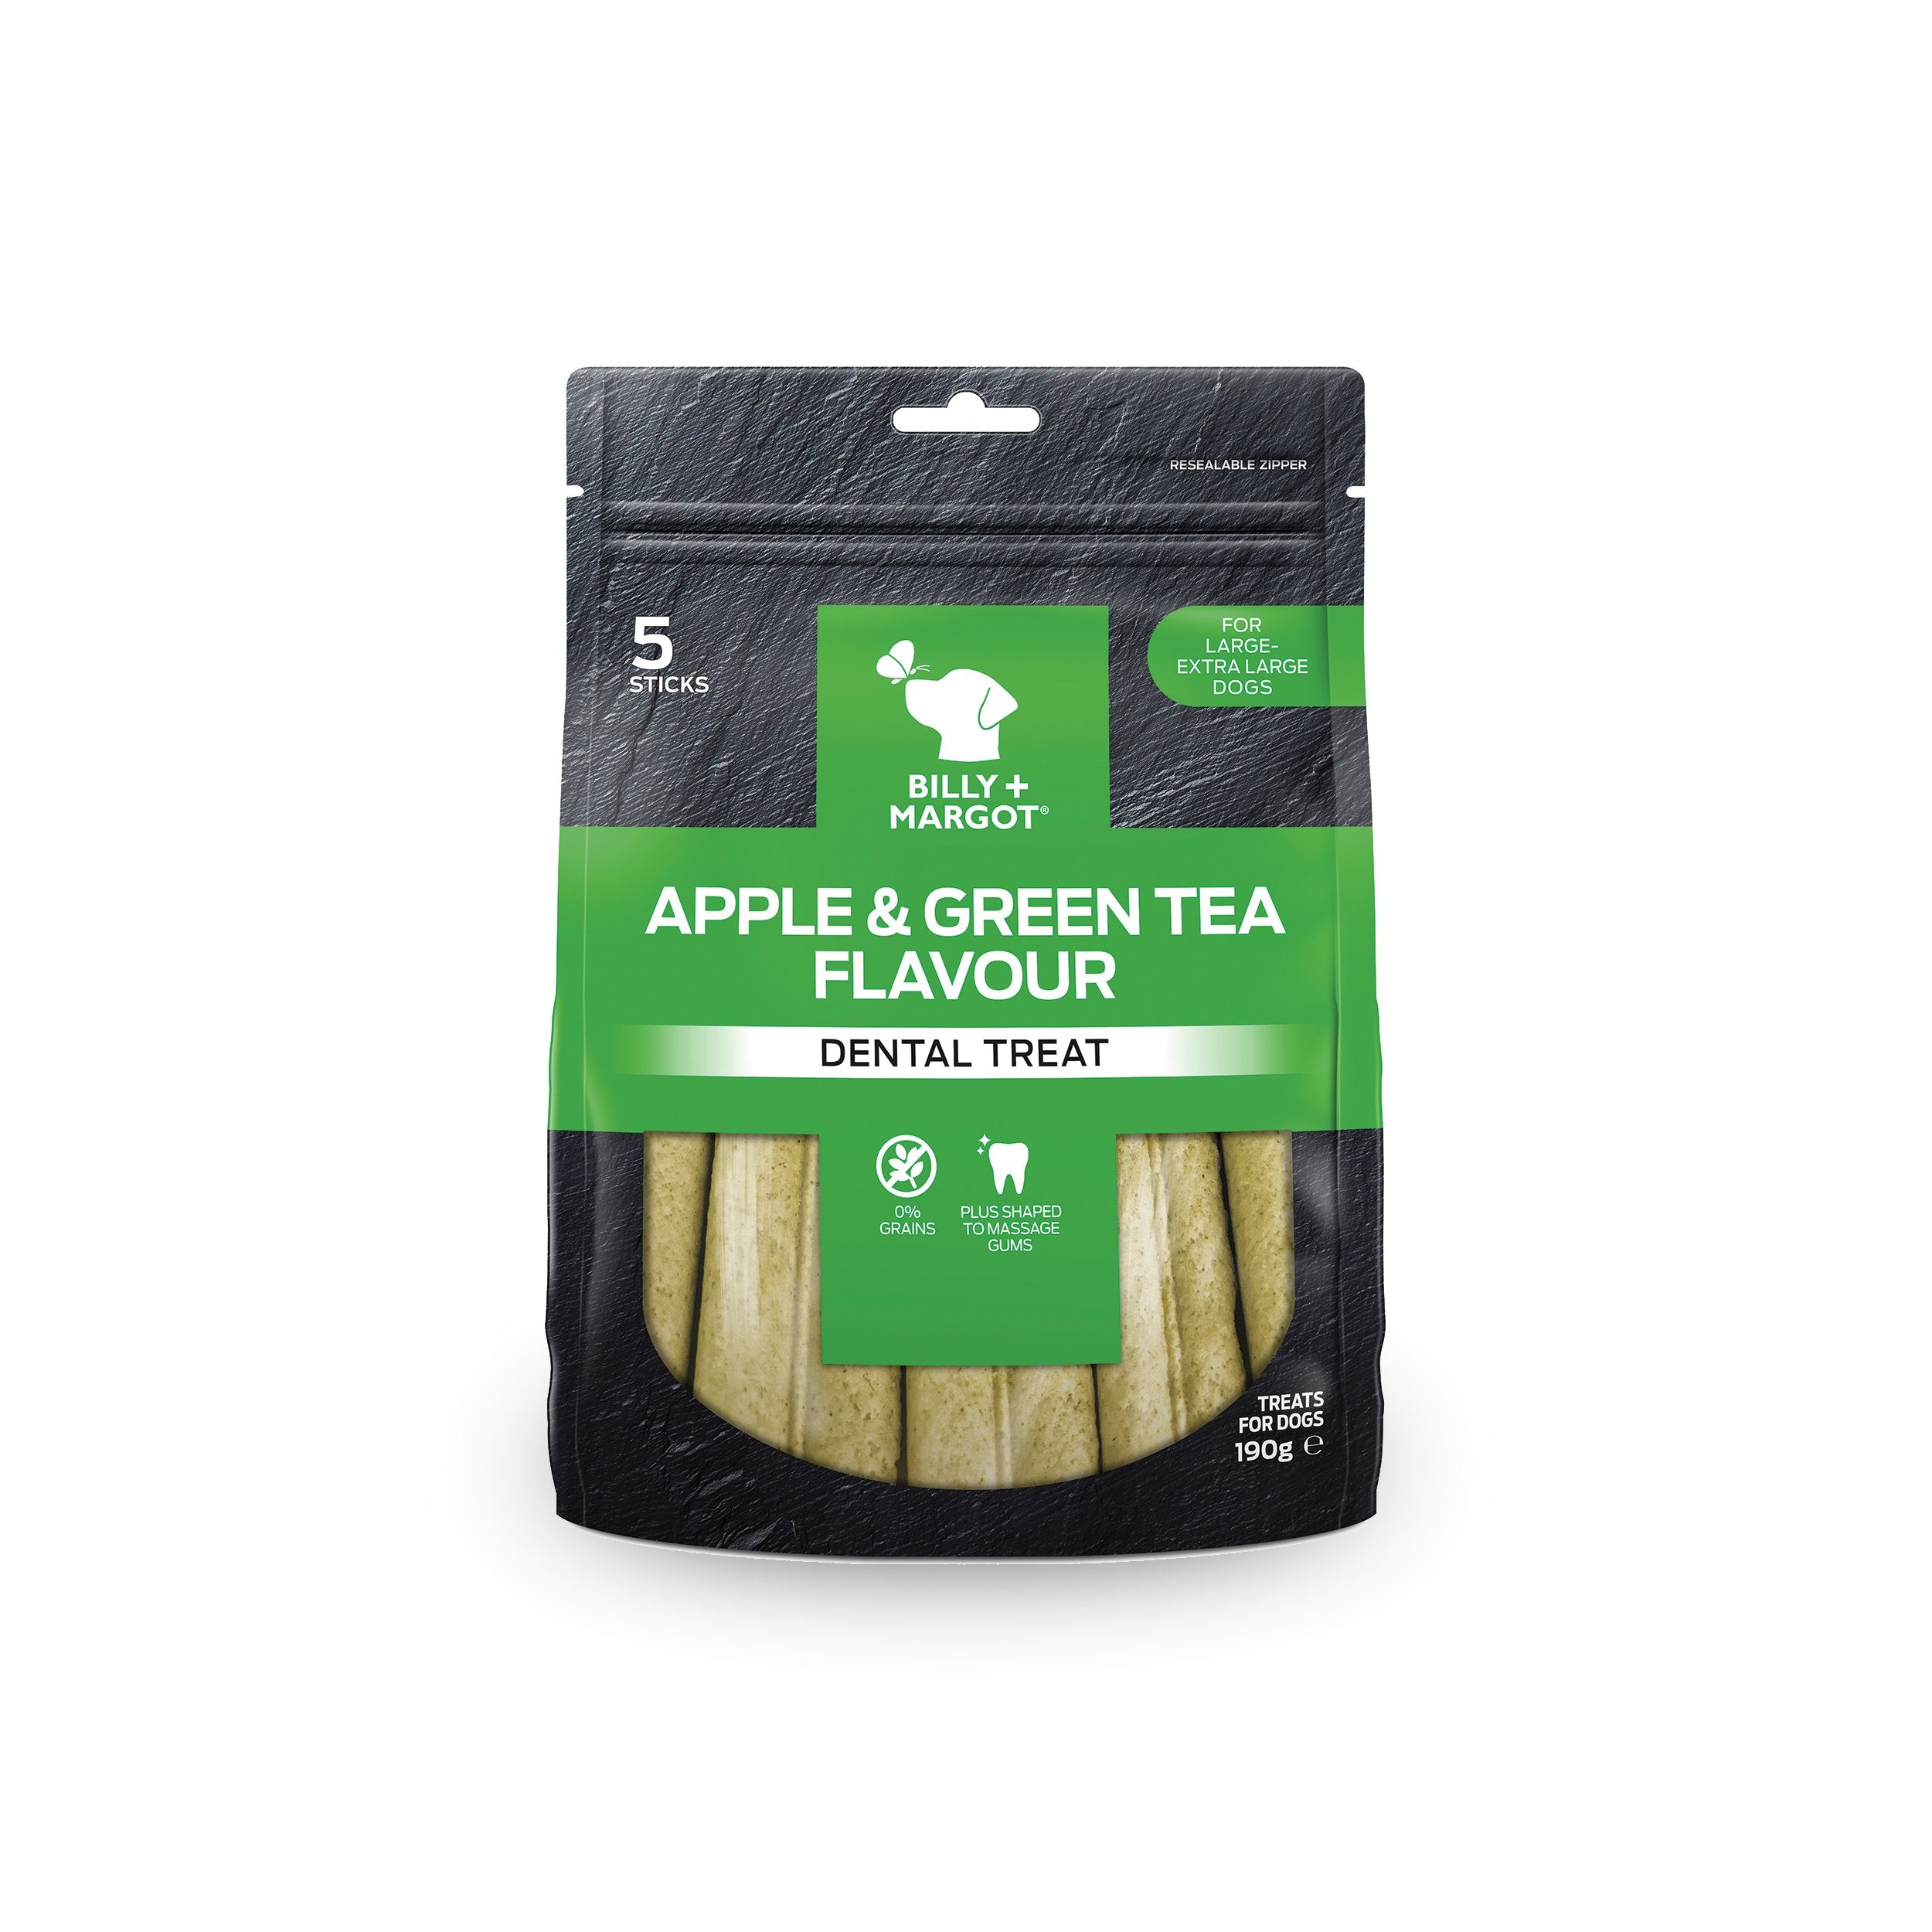 Billy + Margot Apple & Green Tea Dental Treats